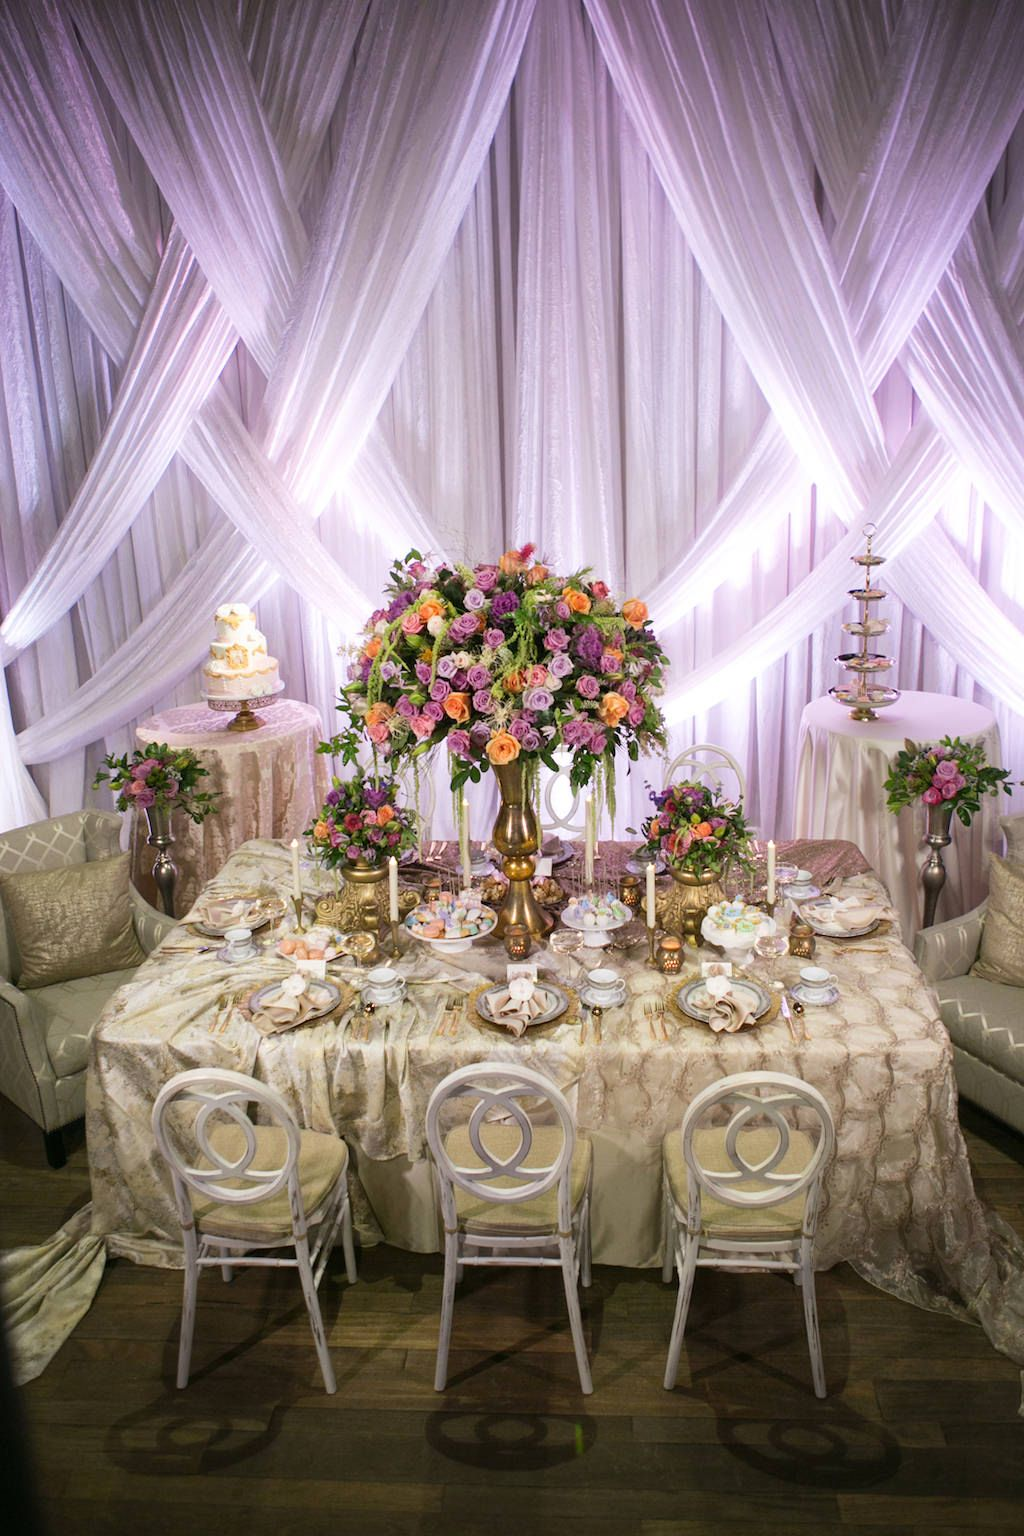 Modern Wedding Reception with Unique Vintage Inspired Furniture and Linens, Tropical Orange, Pink, and Purple Rose with Greenery Centerpieces in Tall Gold Vases, and Drapery with Purple Uplighting | Luxurious St Pete Wedding at Unique Downtown Venue NOVA 535